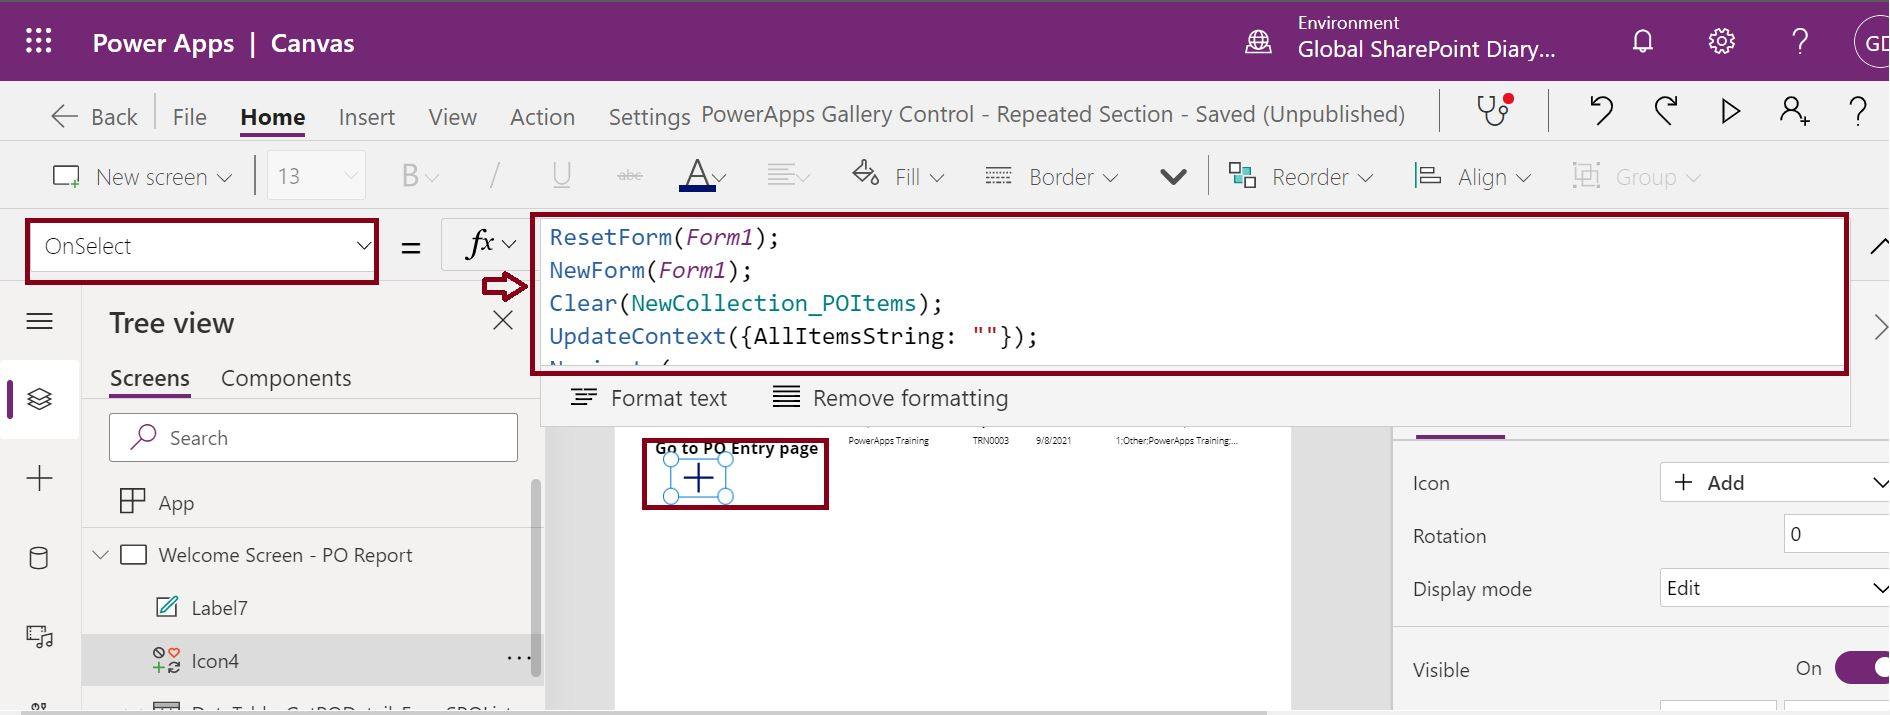 PowerApps onselect function plus icon to navigate to purchase order creation page